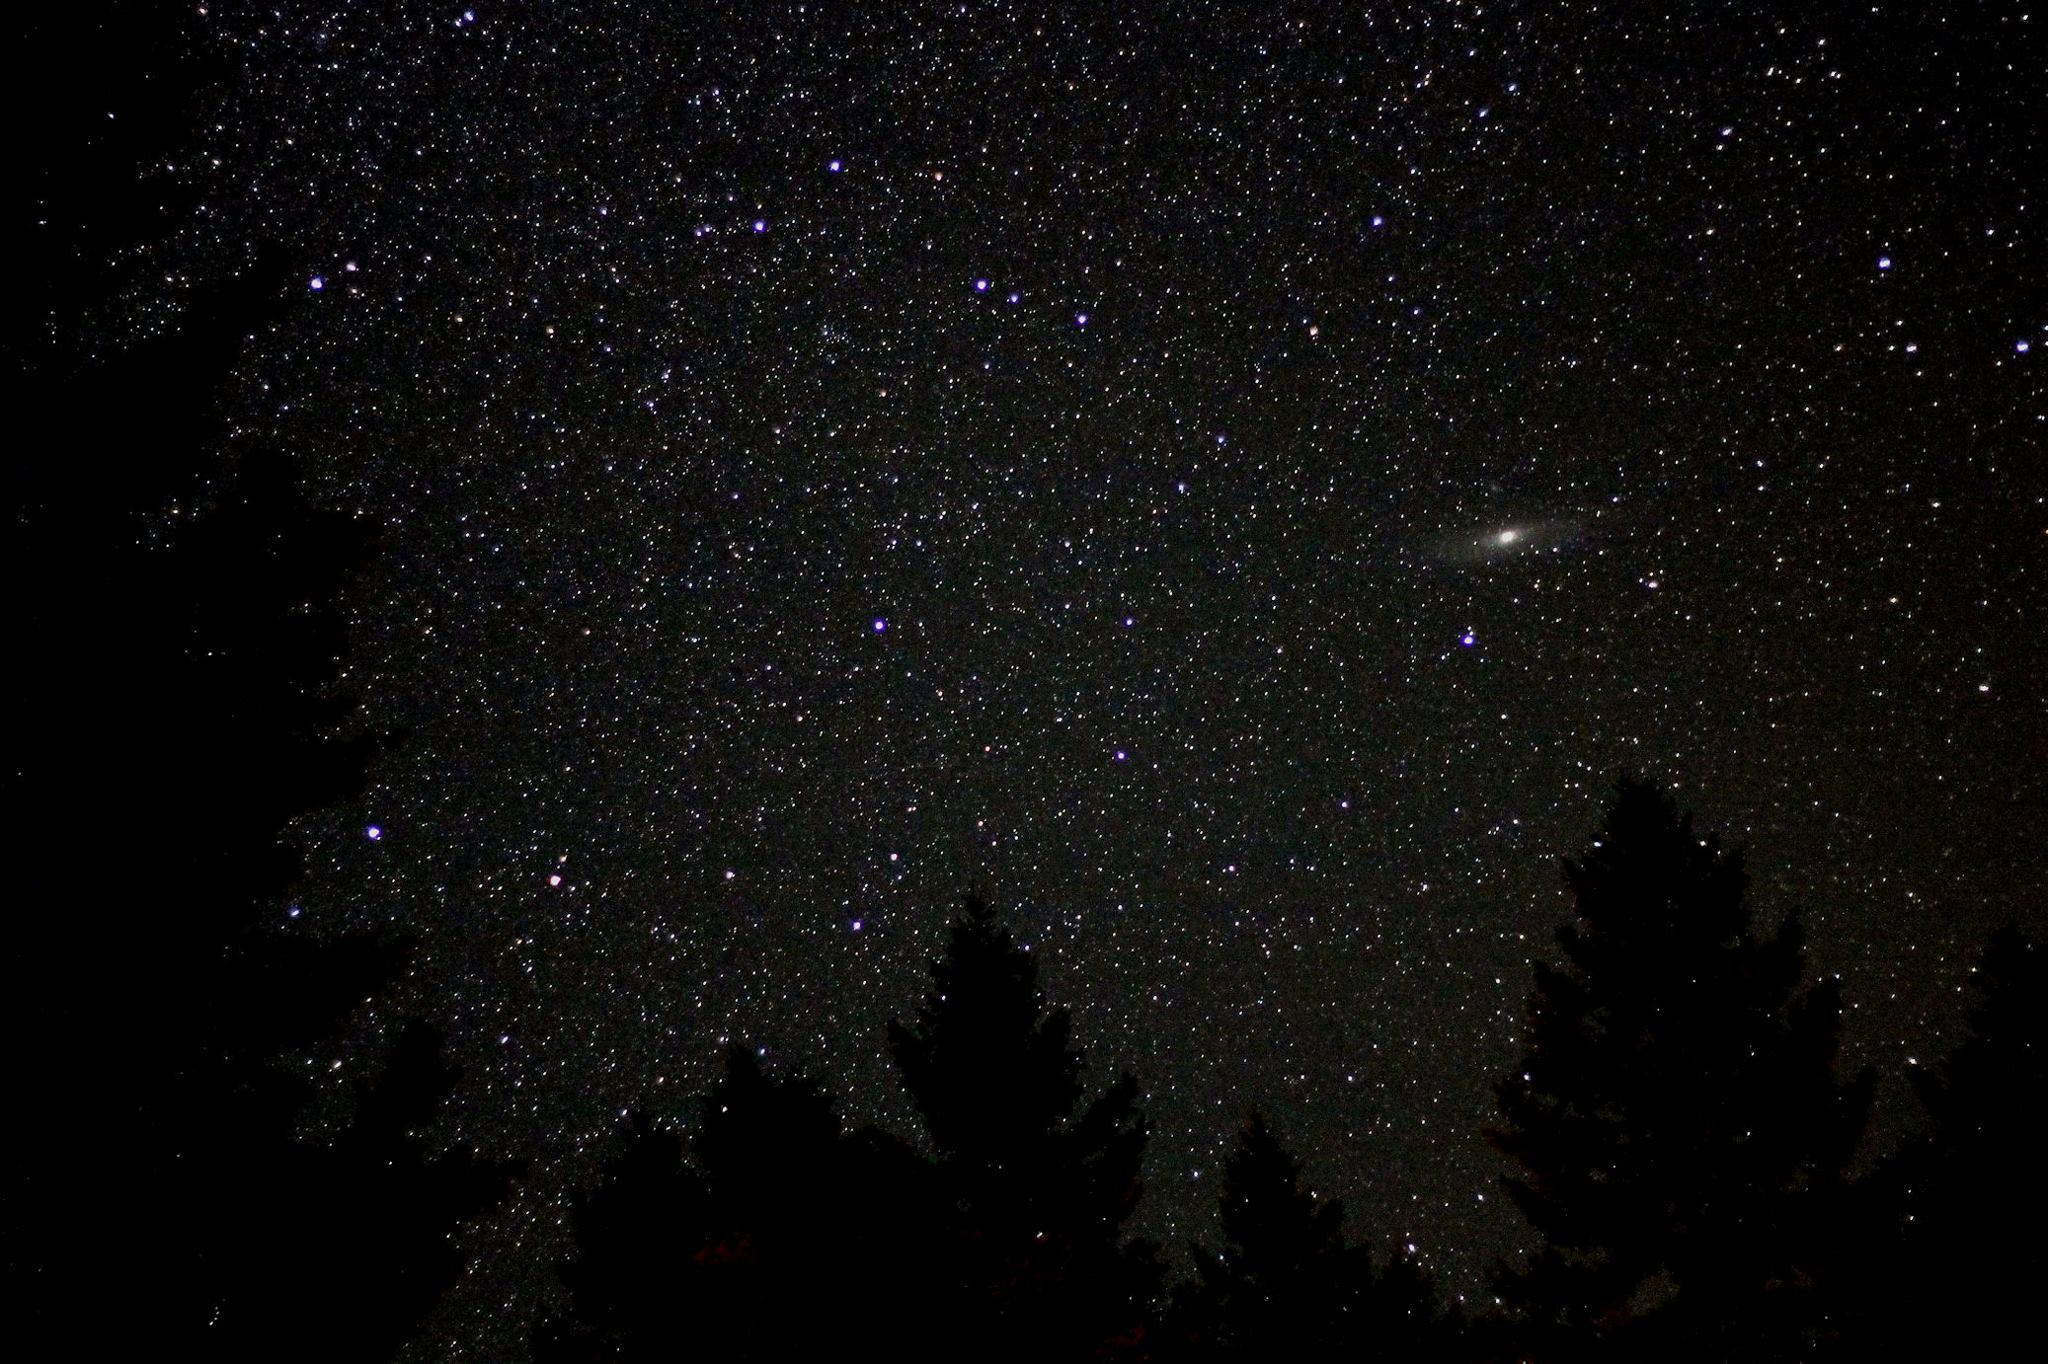 Use Great Square of Pegasus to locate the Andromeda galaxy